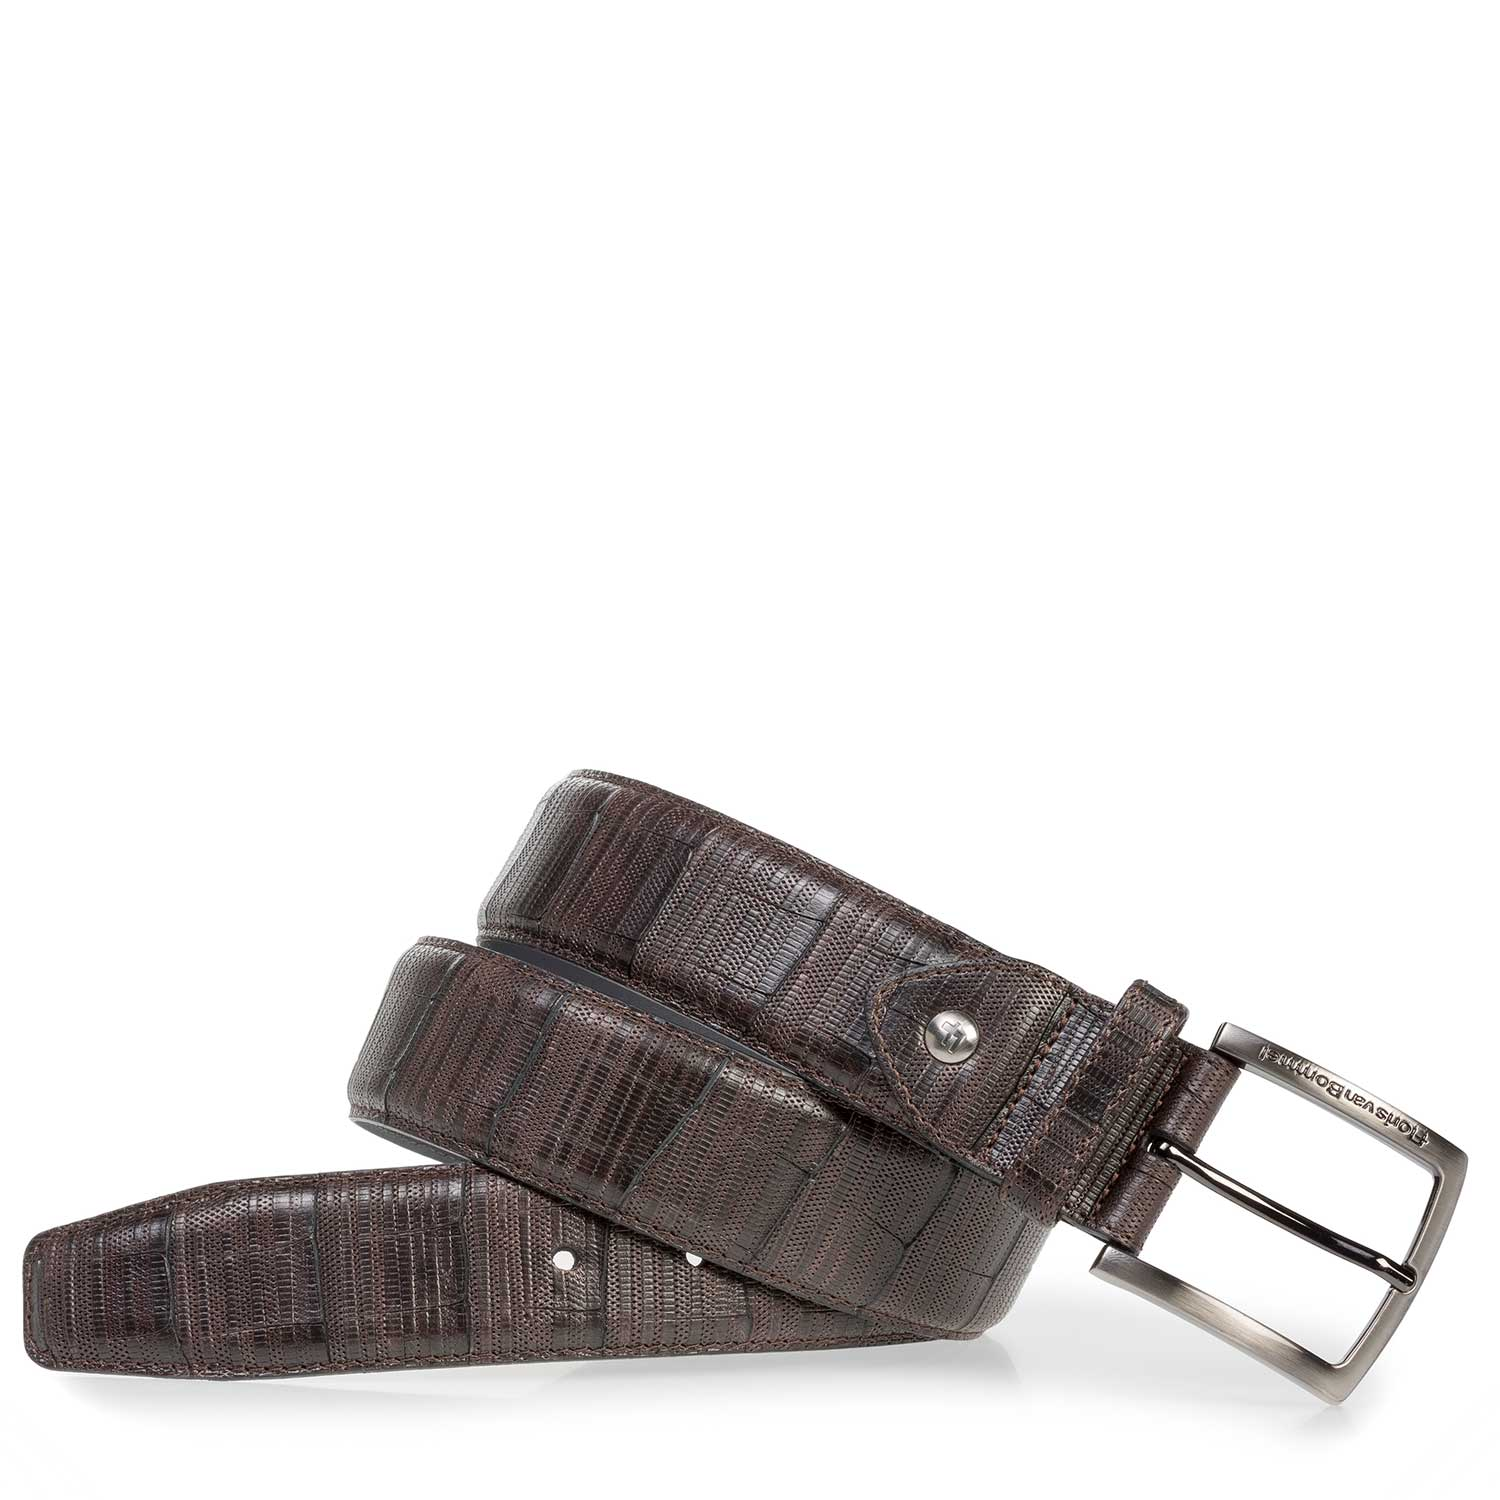 75202/04 - Dark brown leather belt with print